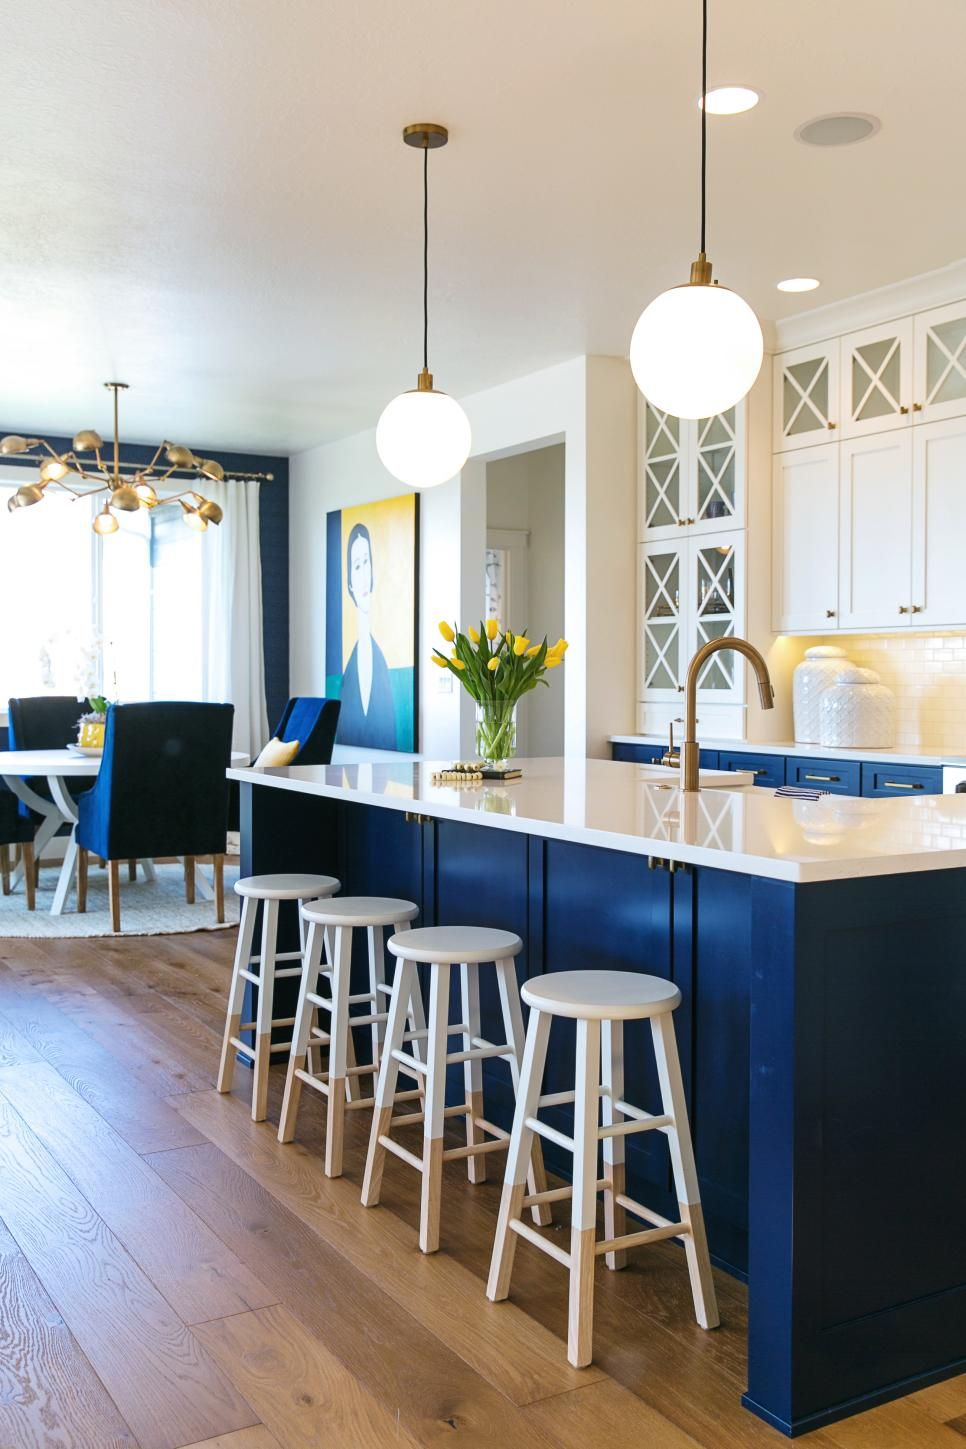 Blue And White Kitchen With Kitchen Island Stools And Kitchen Table With Chairs Stools For Kitchen Island Kitchen Interior Blue Kitchen Island